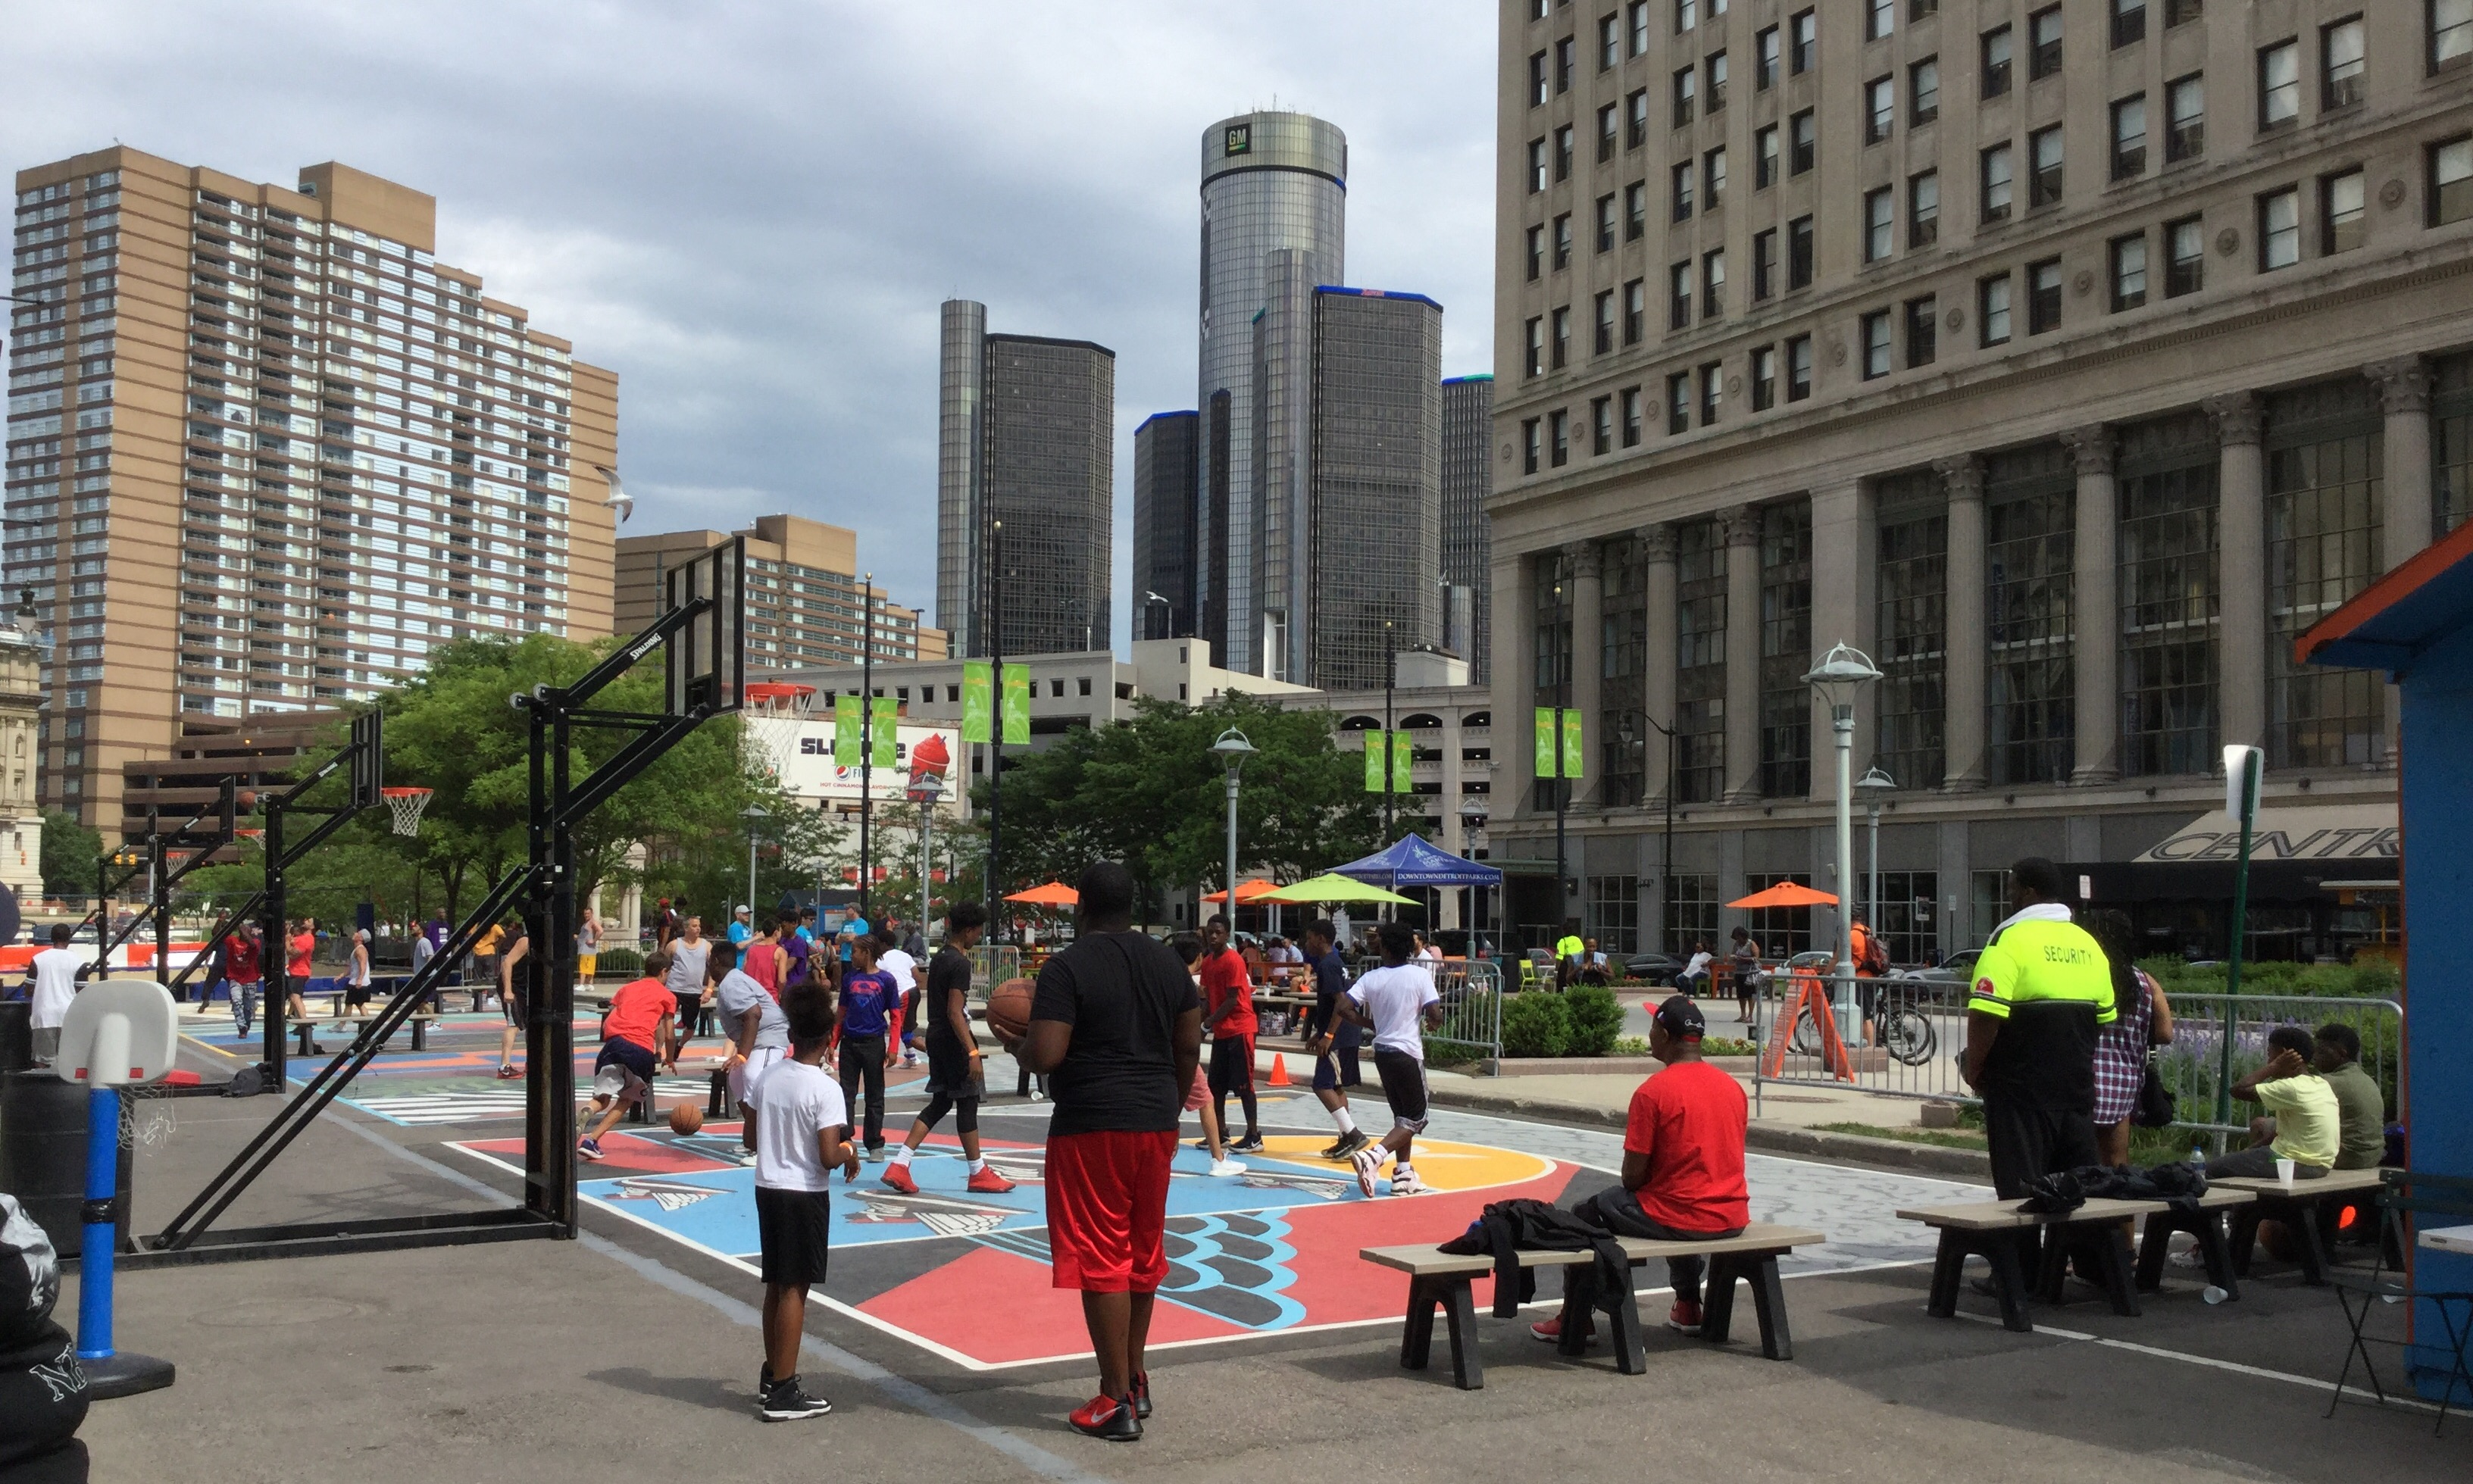 30 Fun Things To Do In Detroit This Summer That Are 5 Or Less